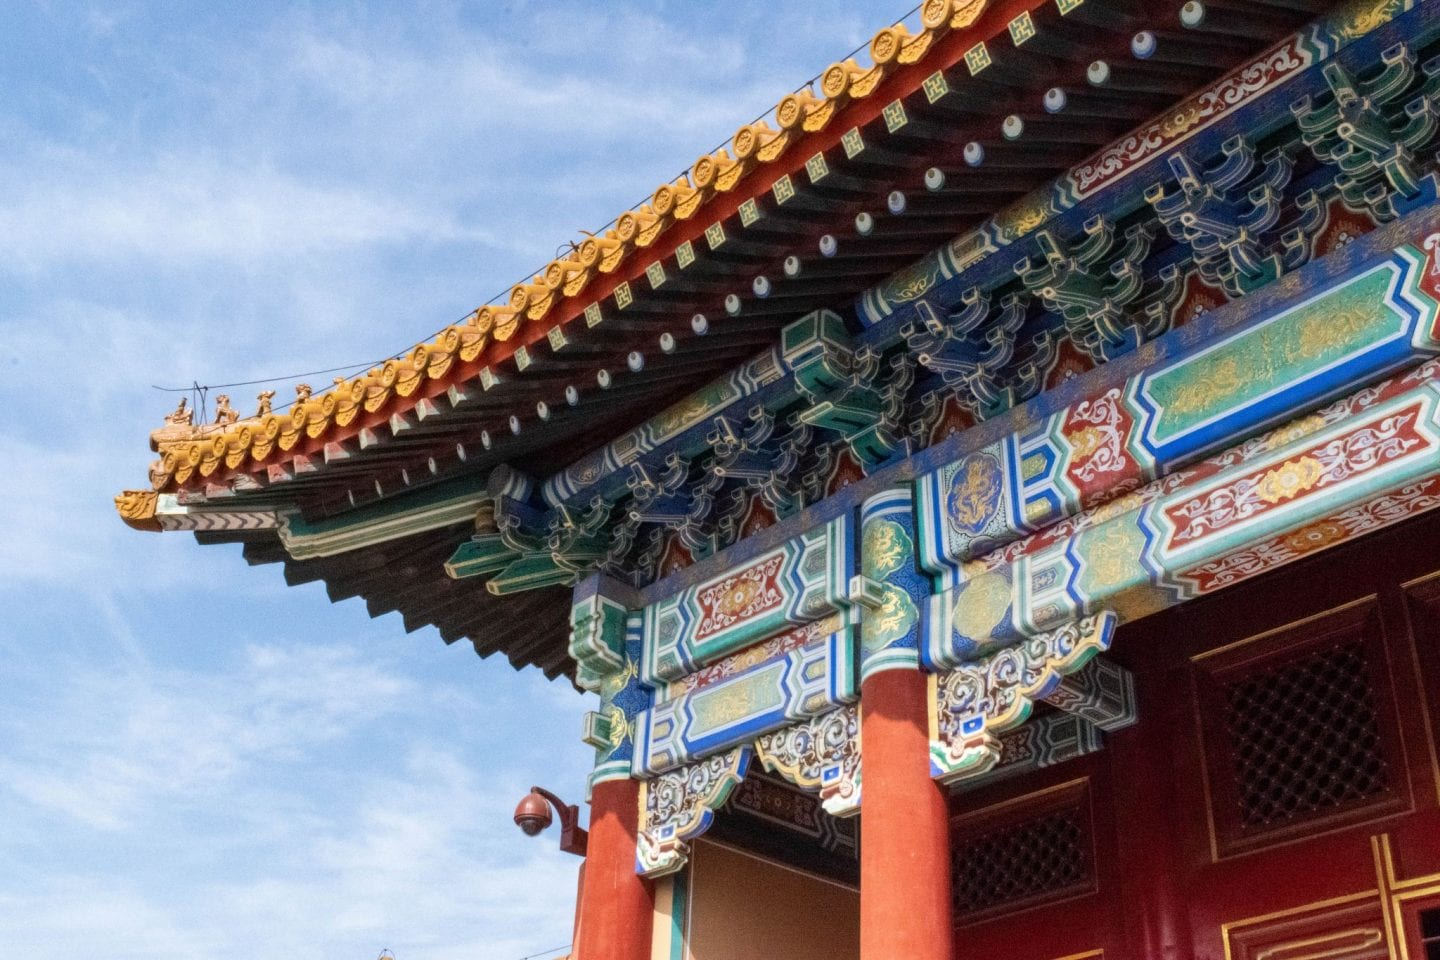 Close up photo of the Forbidden Palace in Beijing with blue skies